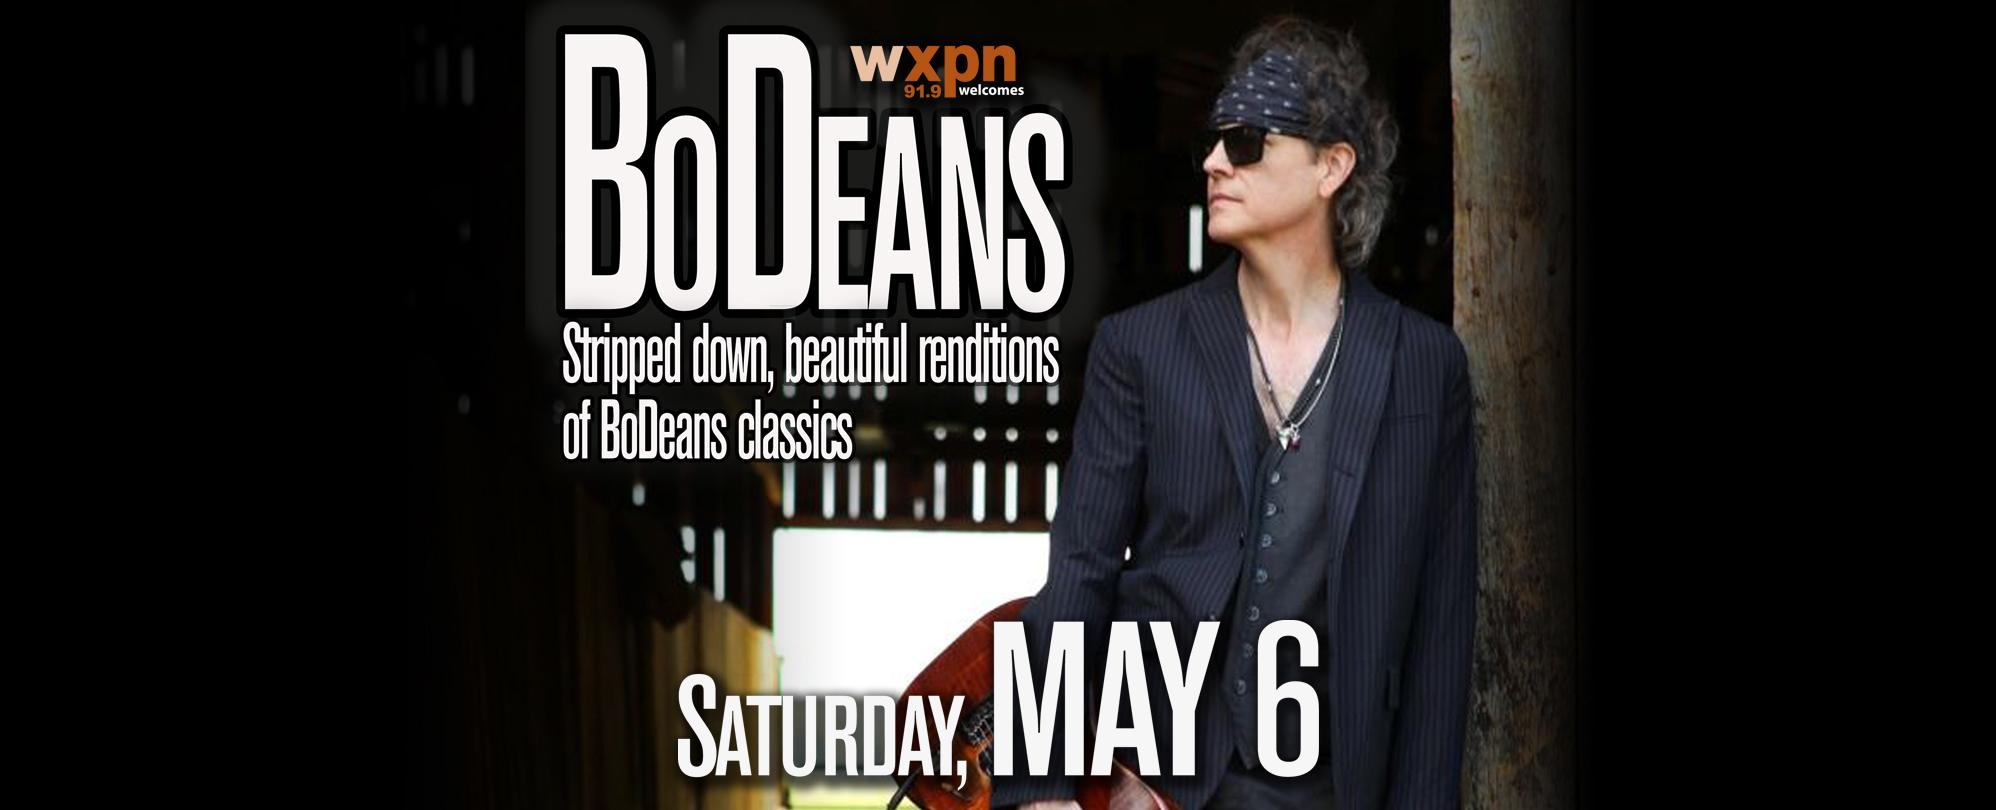 WXPN Welcomes: BoDeans